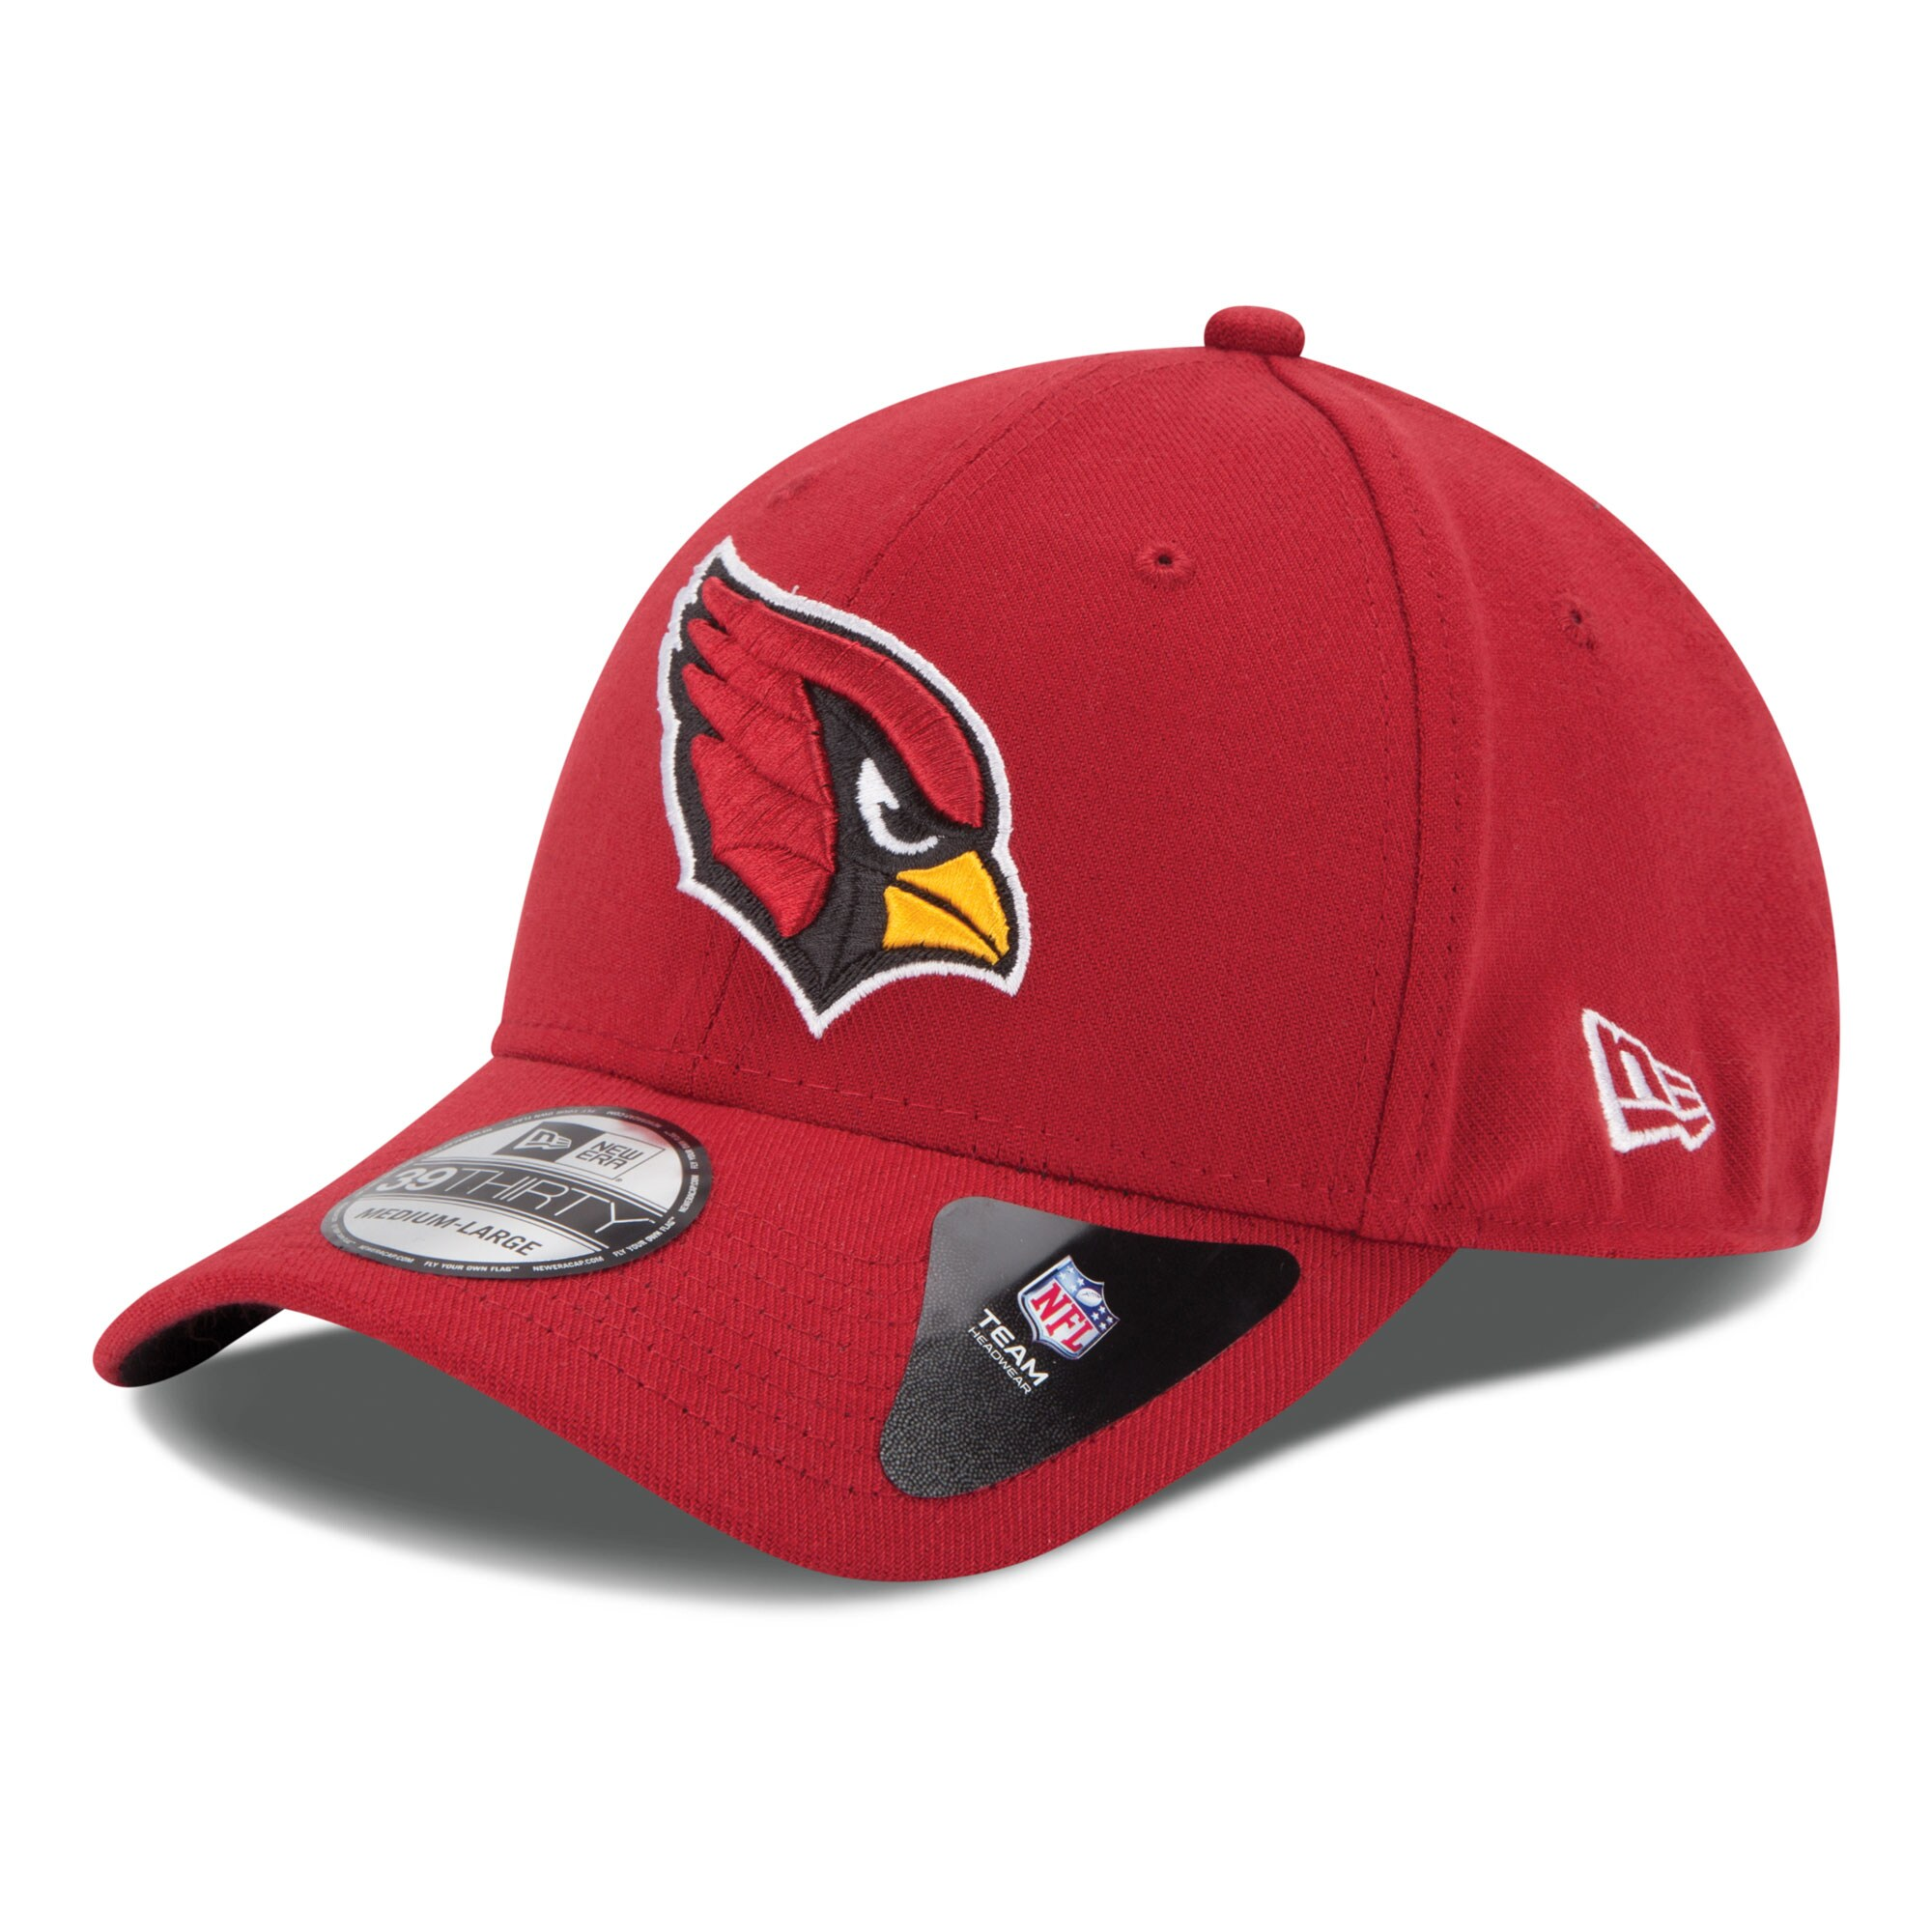 Arizona Cardinals New Era 39THIRTY Team Classic Flex Hat - Cardinal